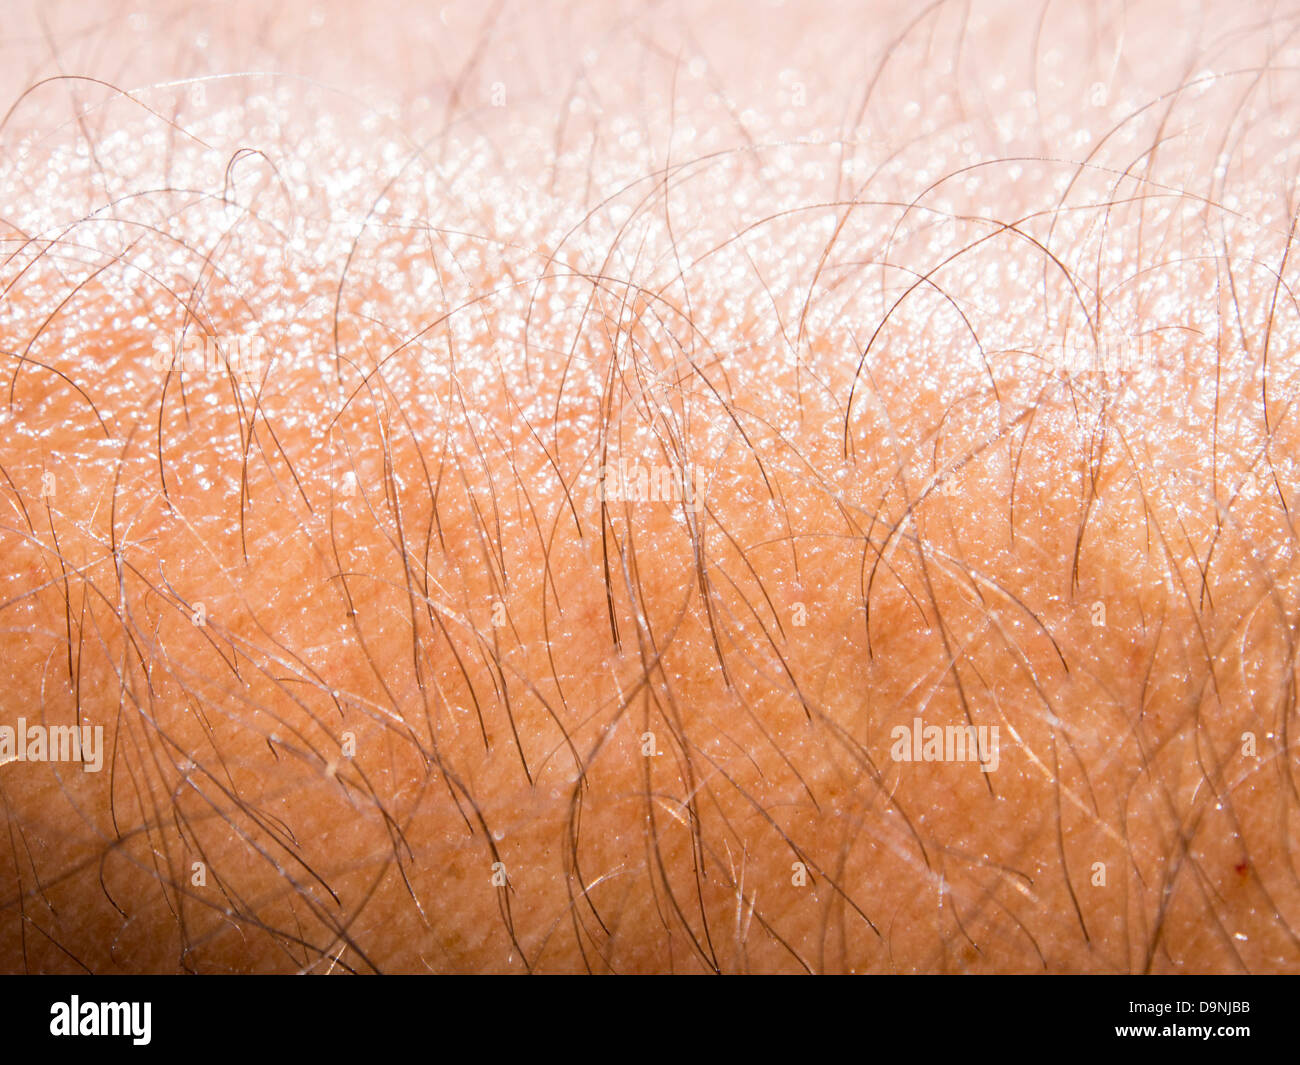 Sweat on a mans arm. - Stock Image